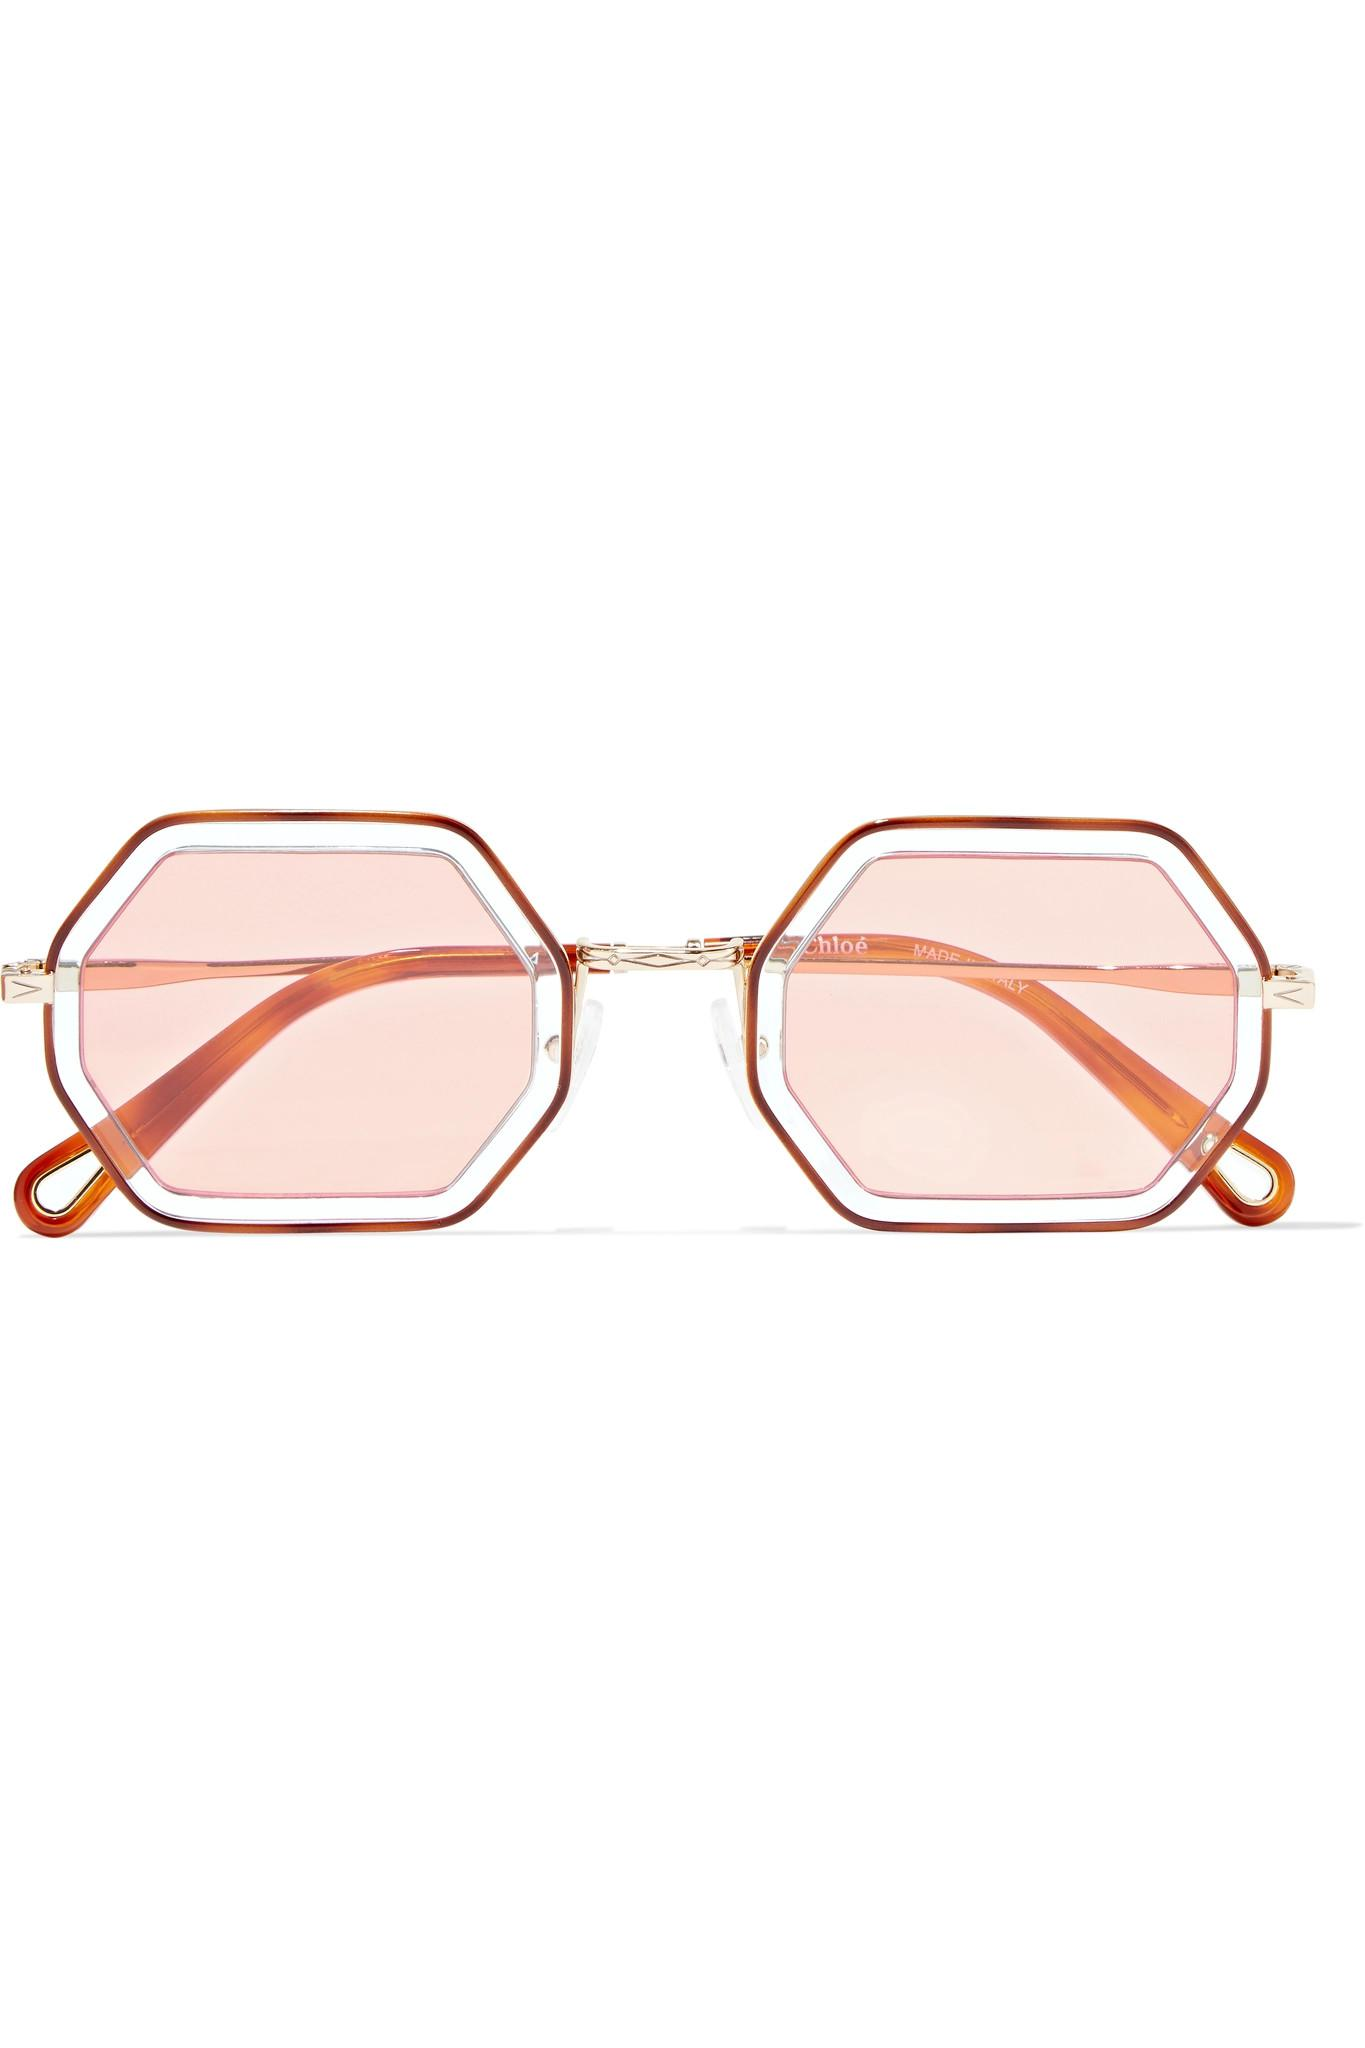 01f2859e08f Chloé Octagon-frame Gold-tone And Acetate Sunglasses - Lyst